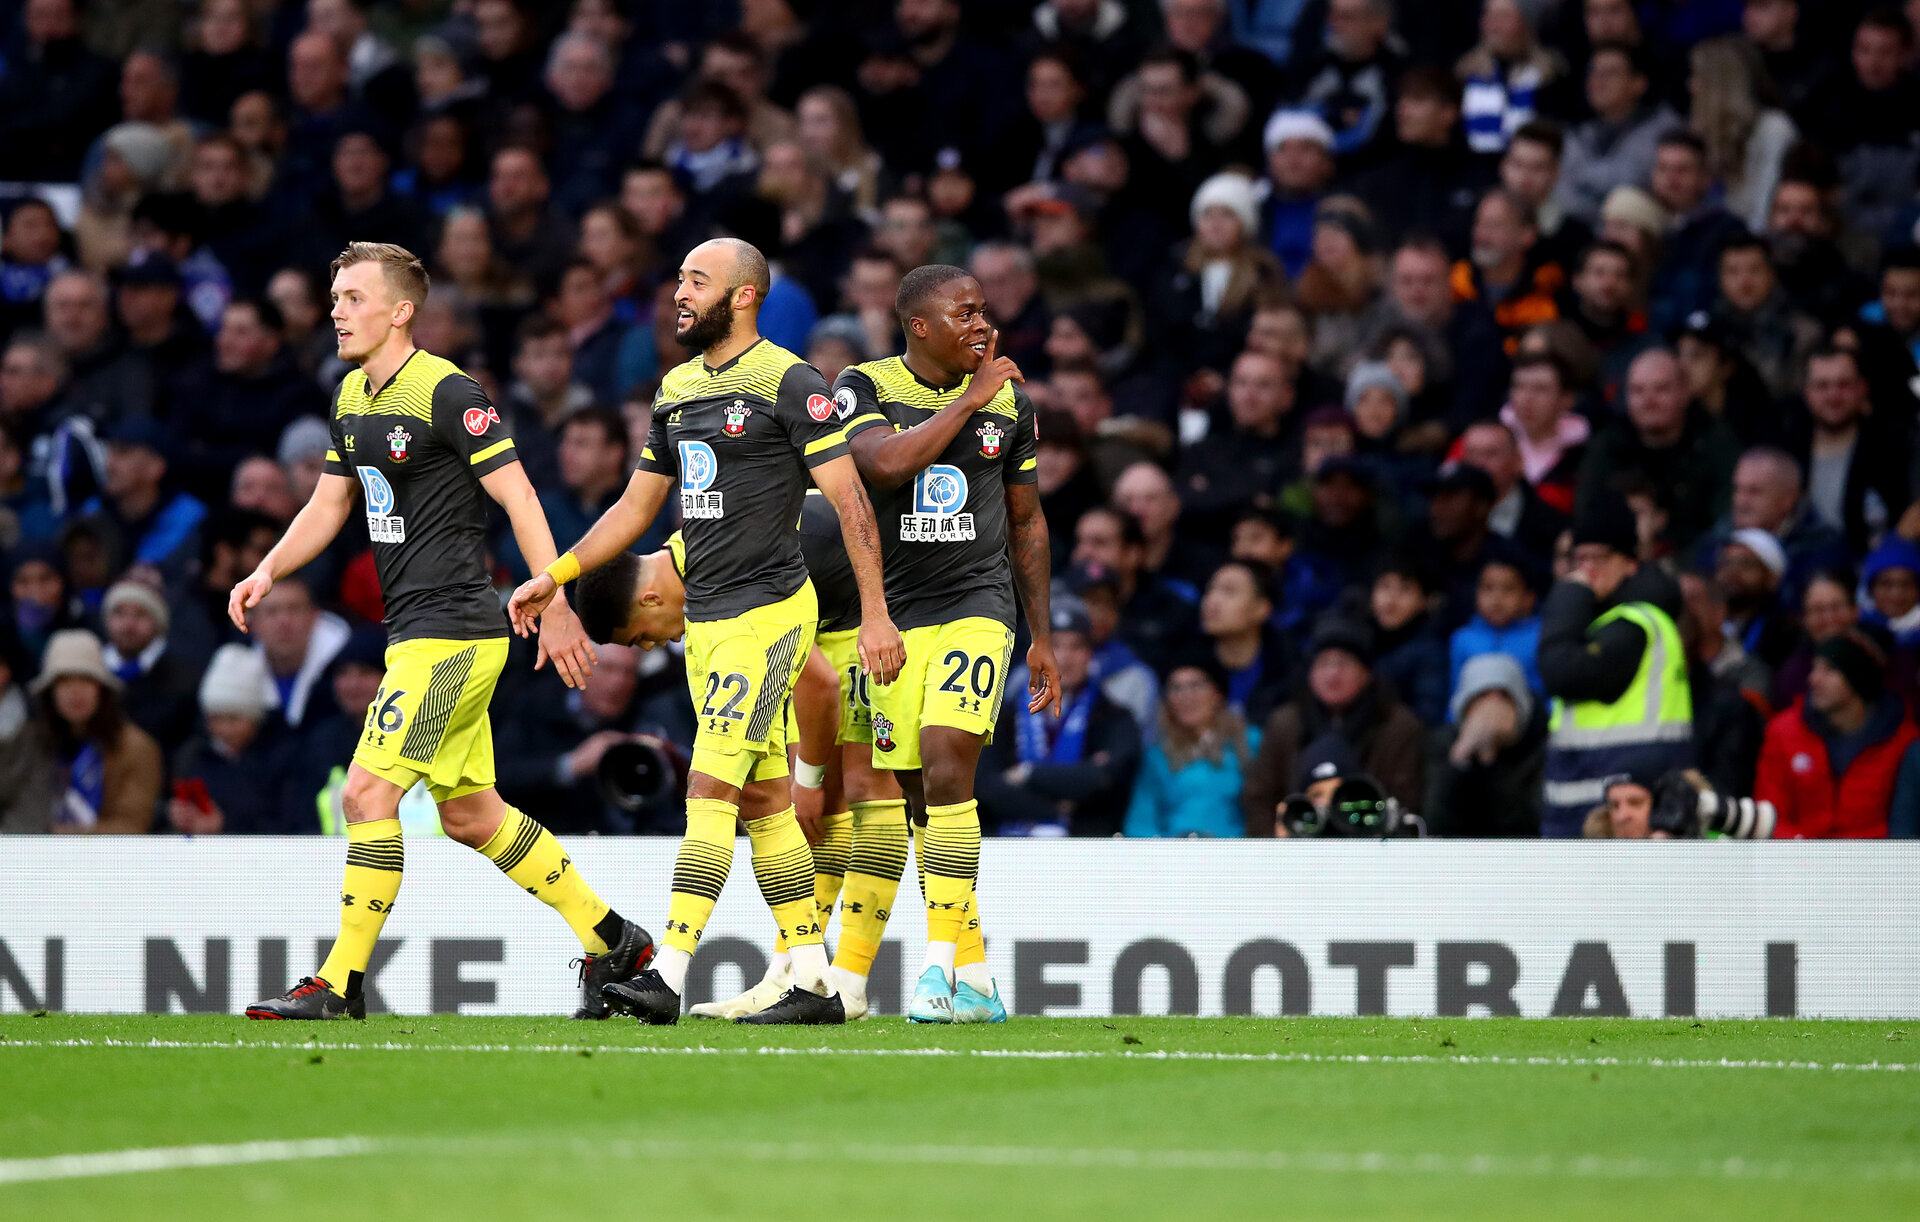 LONDON, ENGLAND - DECEMBER 26: Michael Obafemi(20) of Southampton celebrates with his team mates after opening the scoring during the Premier League match between Chelsea FC and Southampton FC at Stamford Bridge on December 26, 2019 in London, United Kingdom. (Photo by Matt Watson/Getty Images)